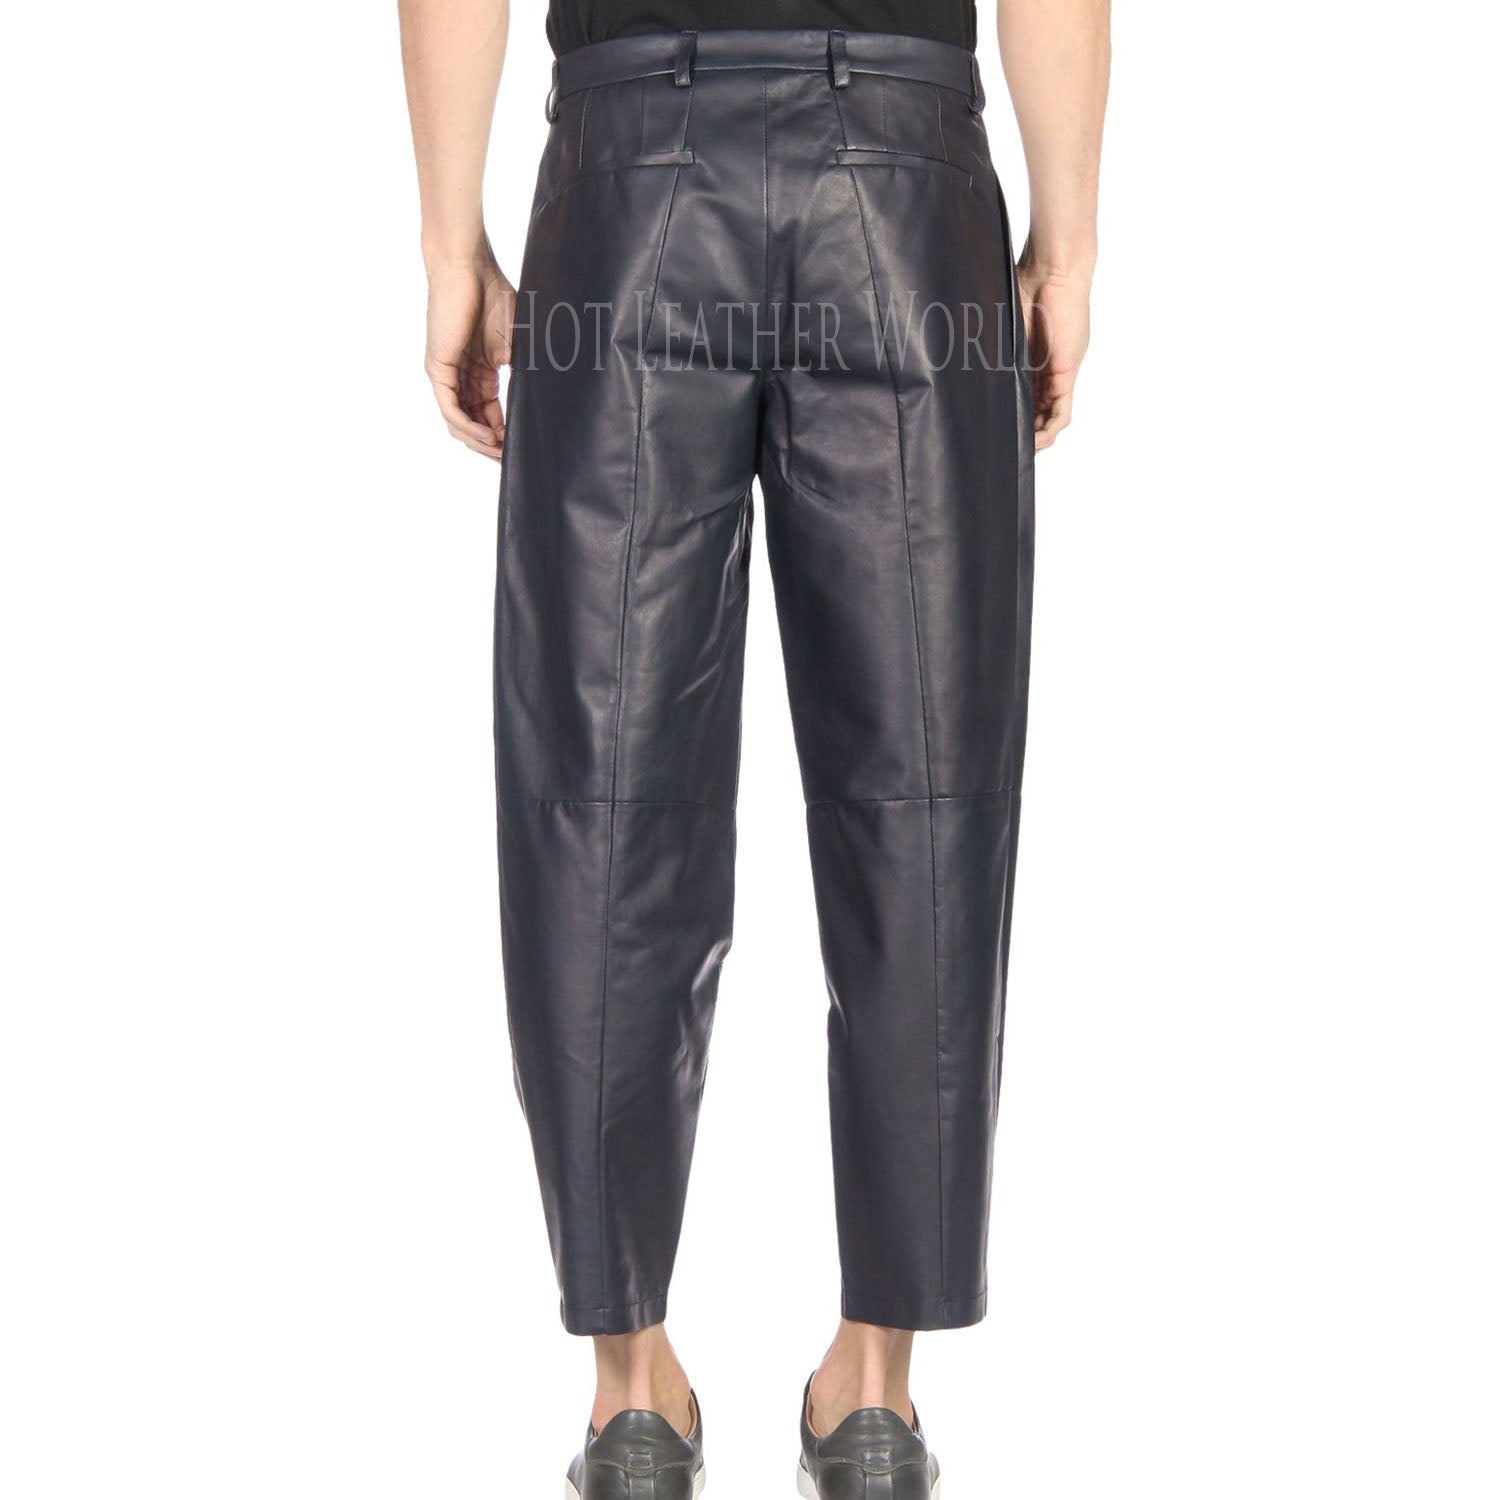 Loose fit Leather Pant For Men -  HOTLEATHERWORLD